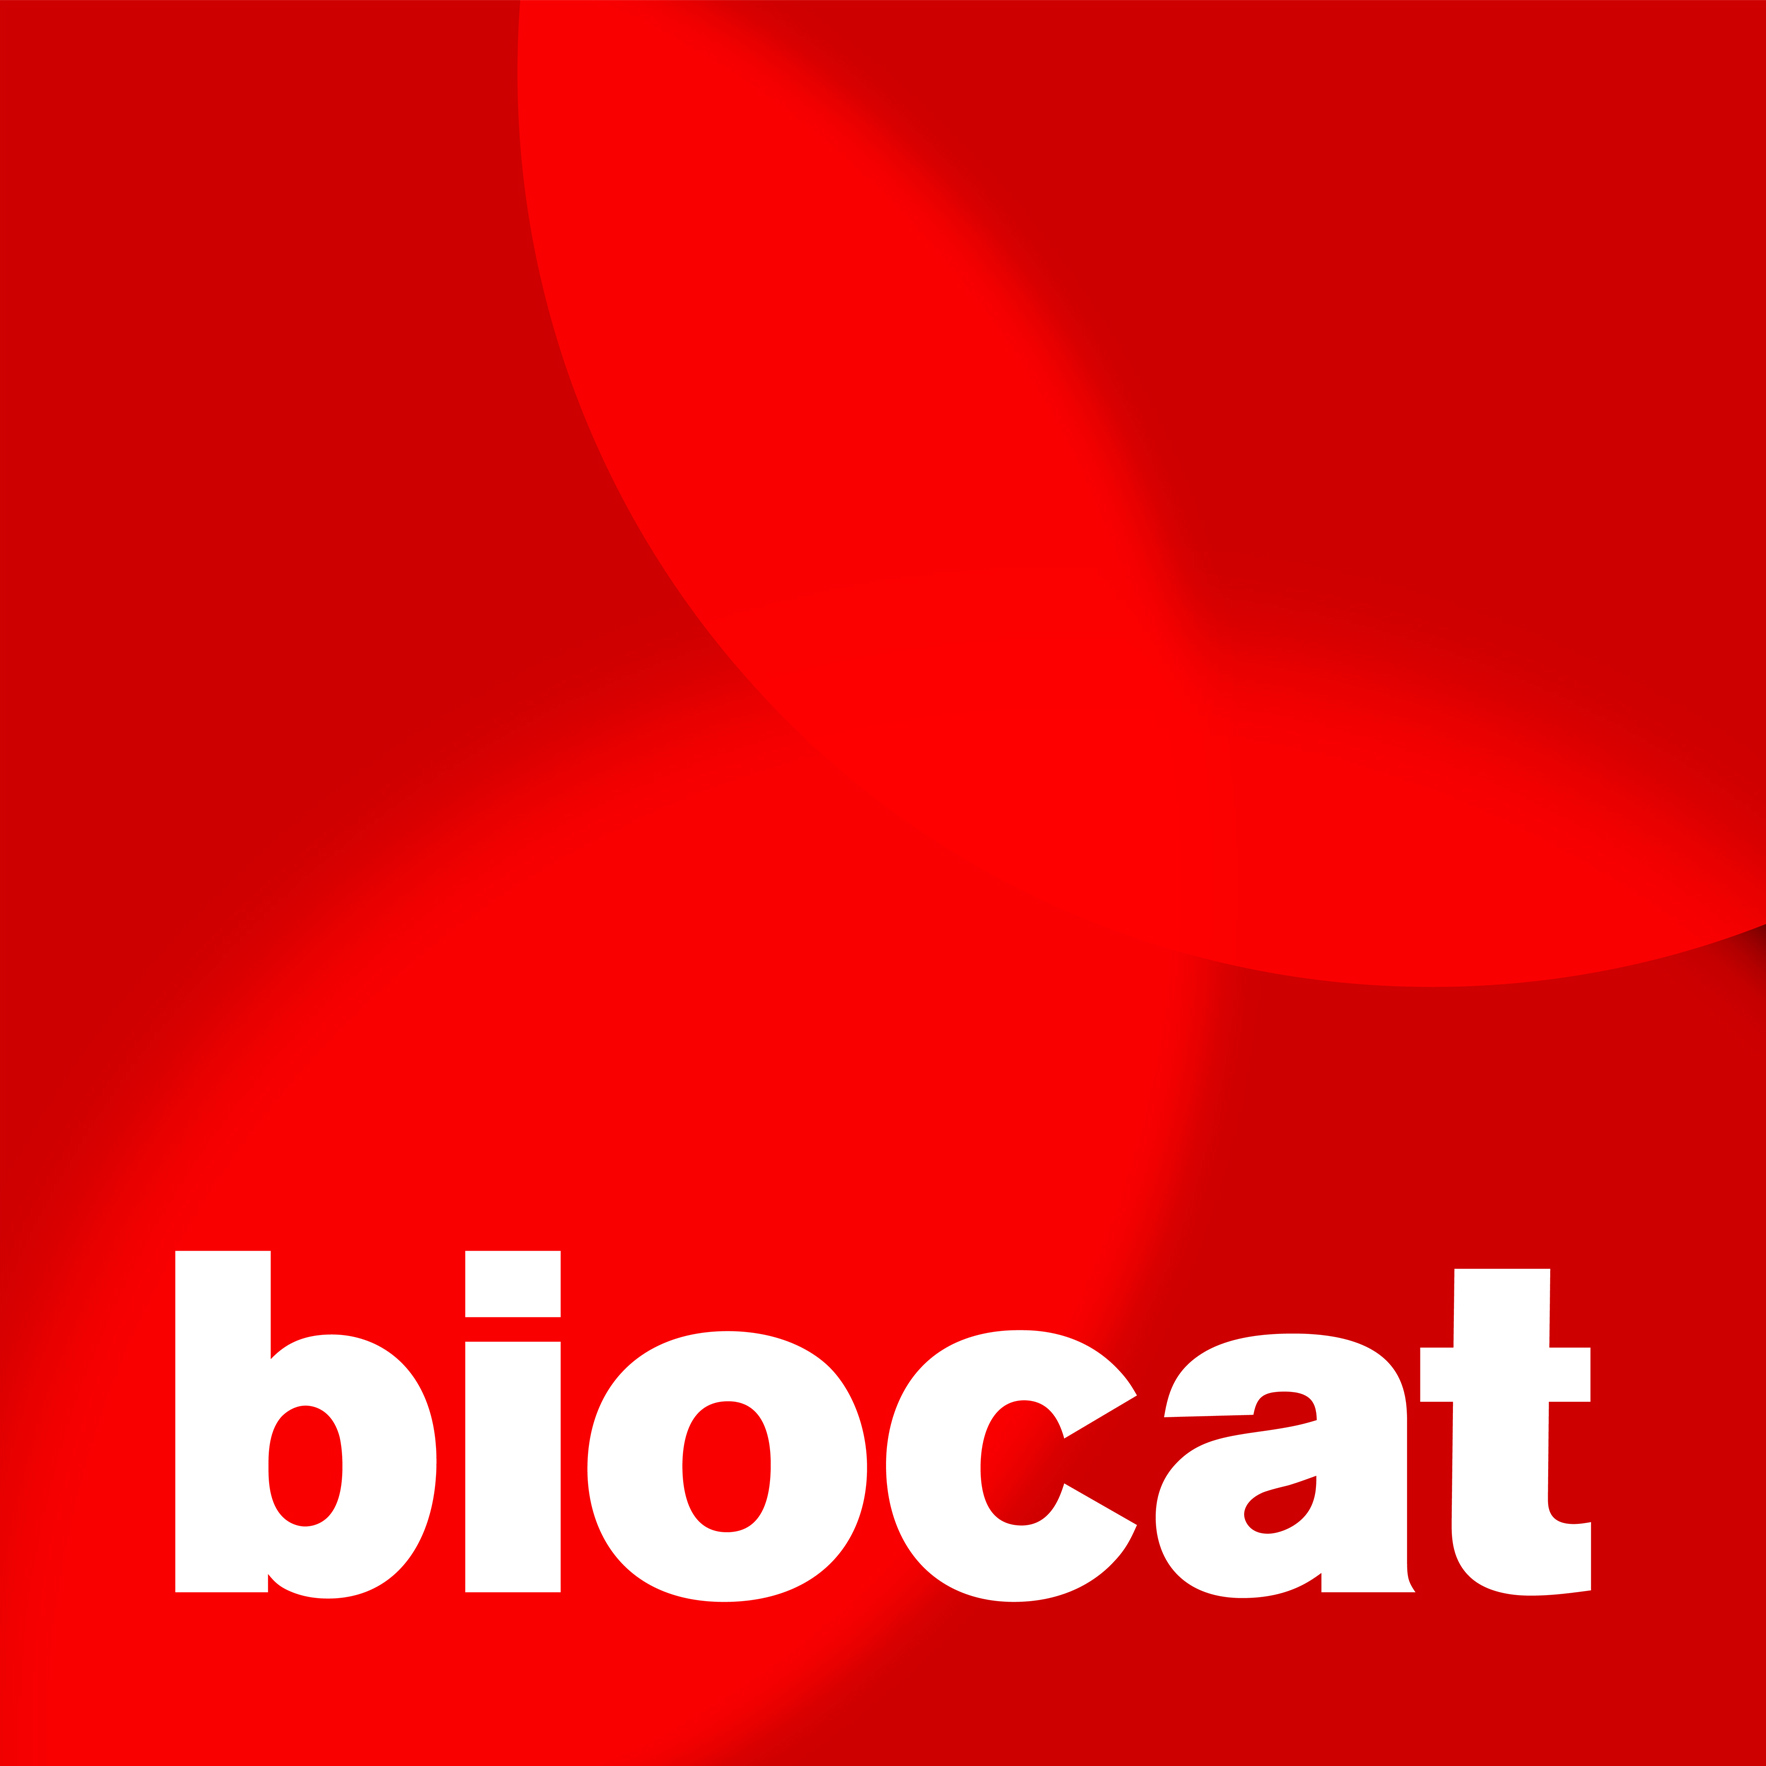 https://www.biocat.cat/sites/all/themes/biocat/images/Logo_Biocat_RGB.jpg